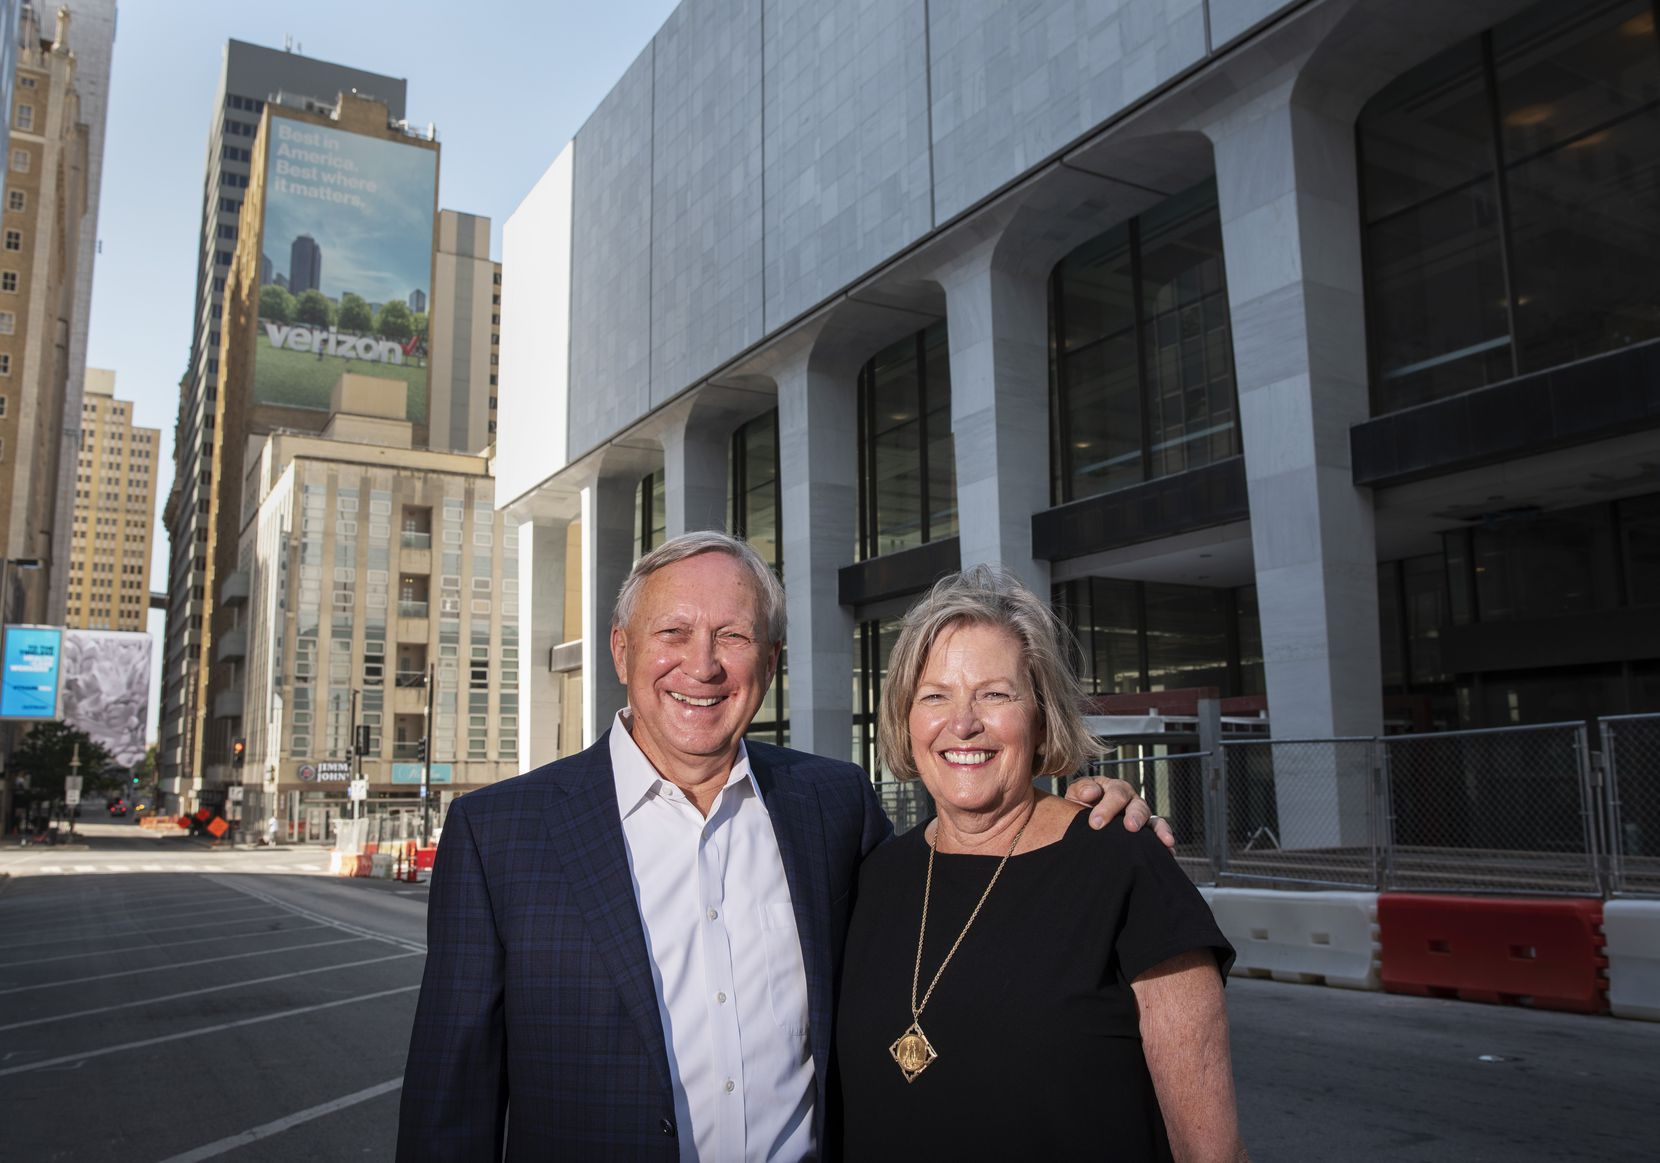 Jerry Merriman, president and founder of Merriman Anderson/Architects, and his wife, Deby Merriman, the company's director of human resources, are shown outside The National building in downtown Dallas.